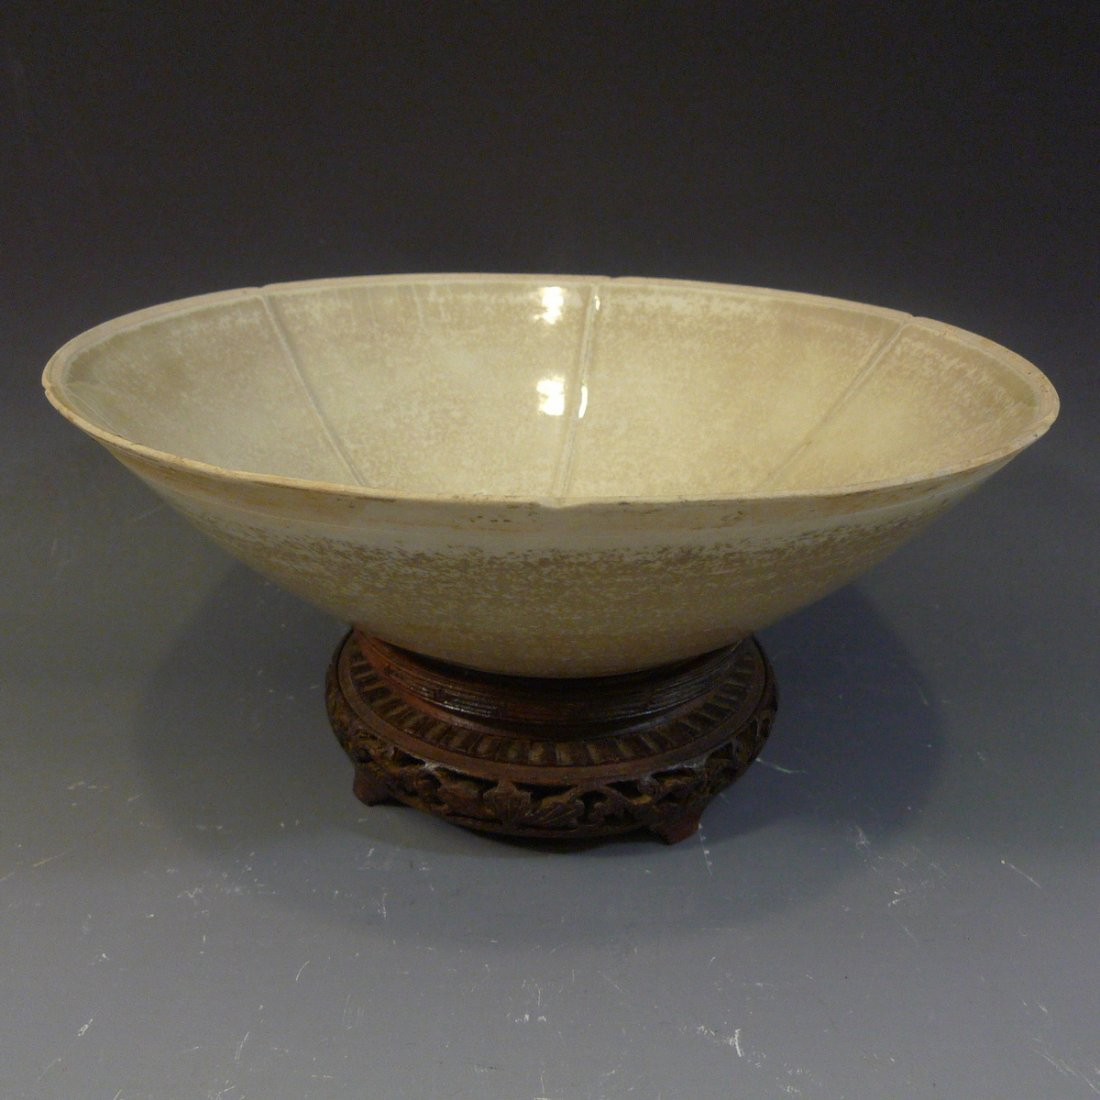 ANTIQUE CHINESE QINGBAI PORCELAIN BOWL SONG DYNASTY